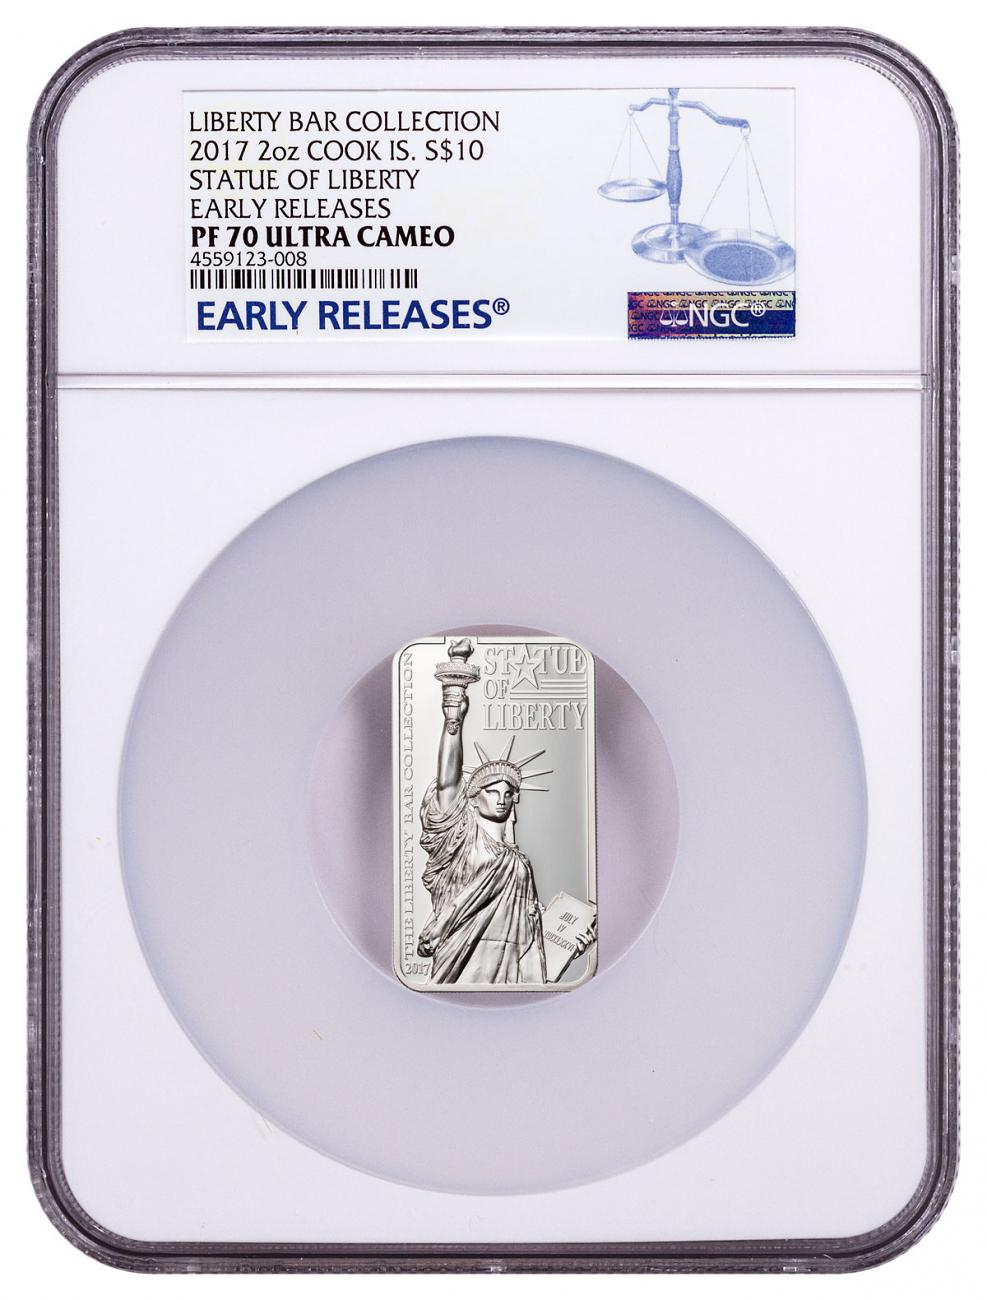 2017 Cook Islands Liberty Bar - Statue of Liberty High Relief Rectangle Silver Proof $10 Coin NGC PF70 UC ER